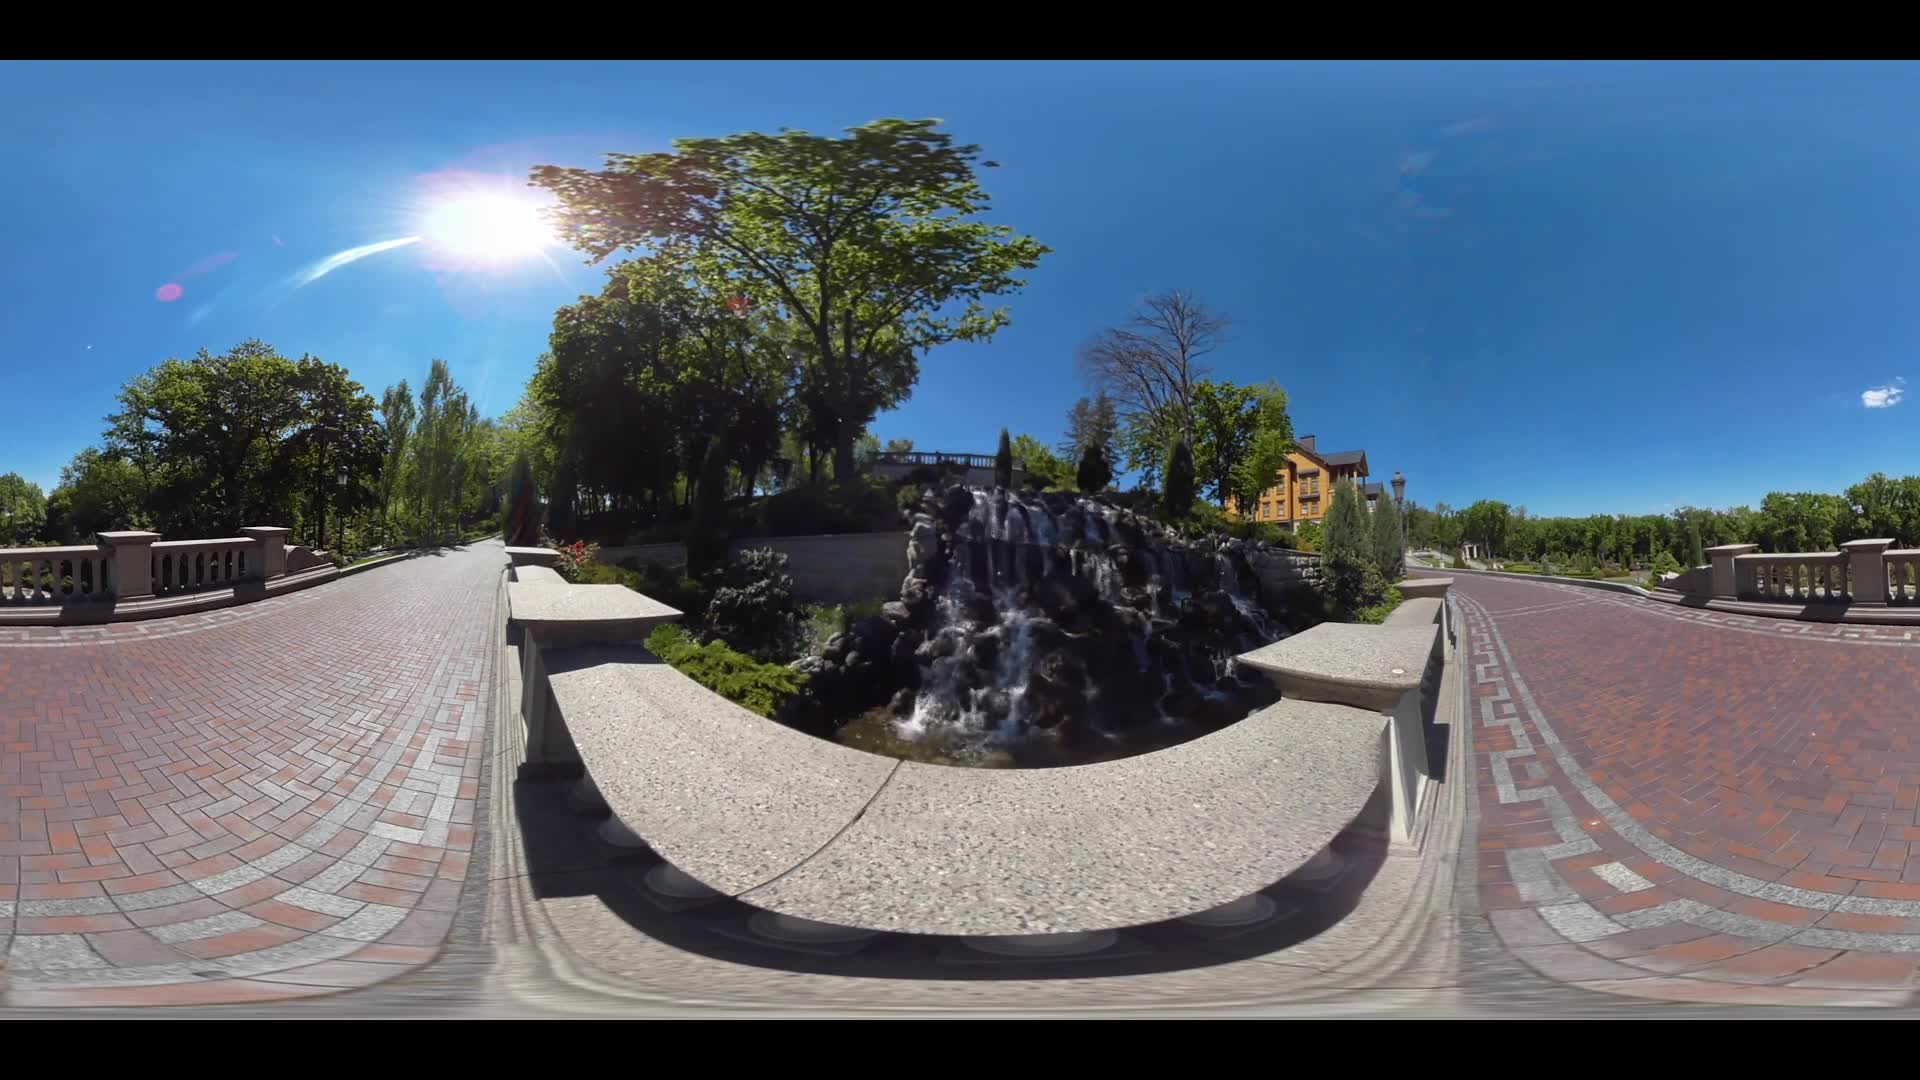 Decorative waterfall on background stones in cottage village. Waterfall landscape in cottage village 360 panorama. Panoramic view of stone pathway in summer garden. 360 degree view of stone walkway